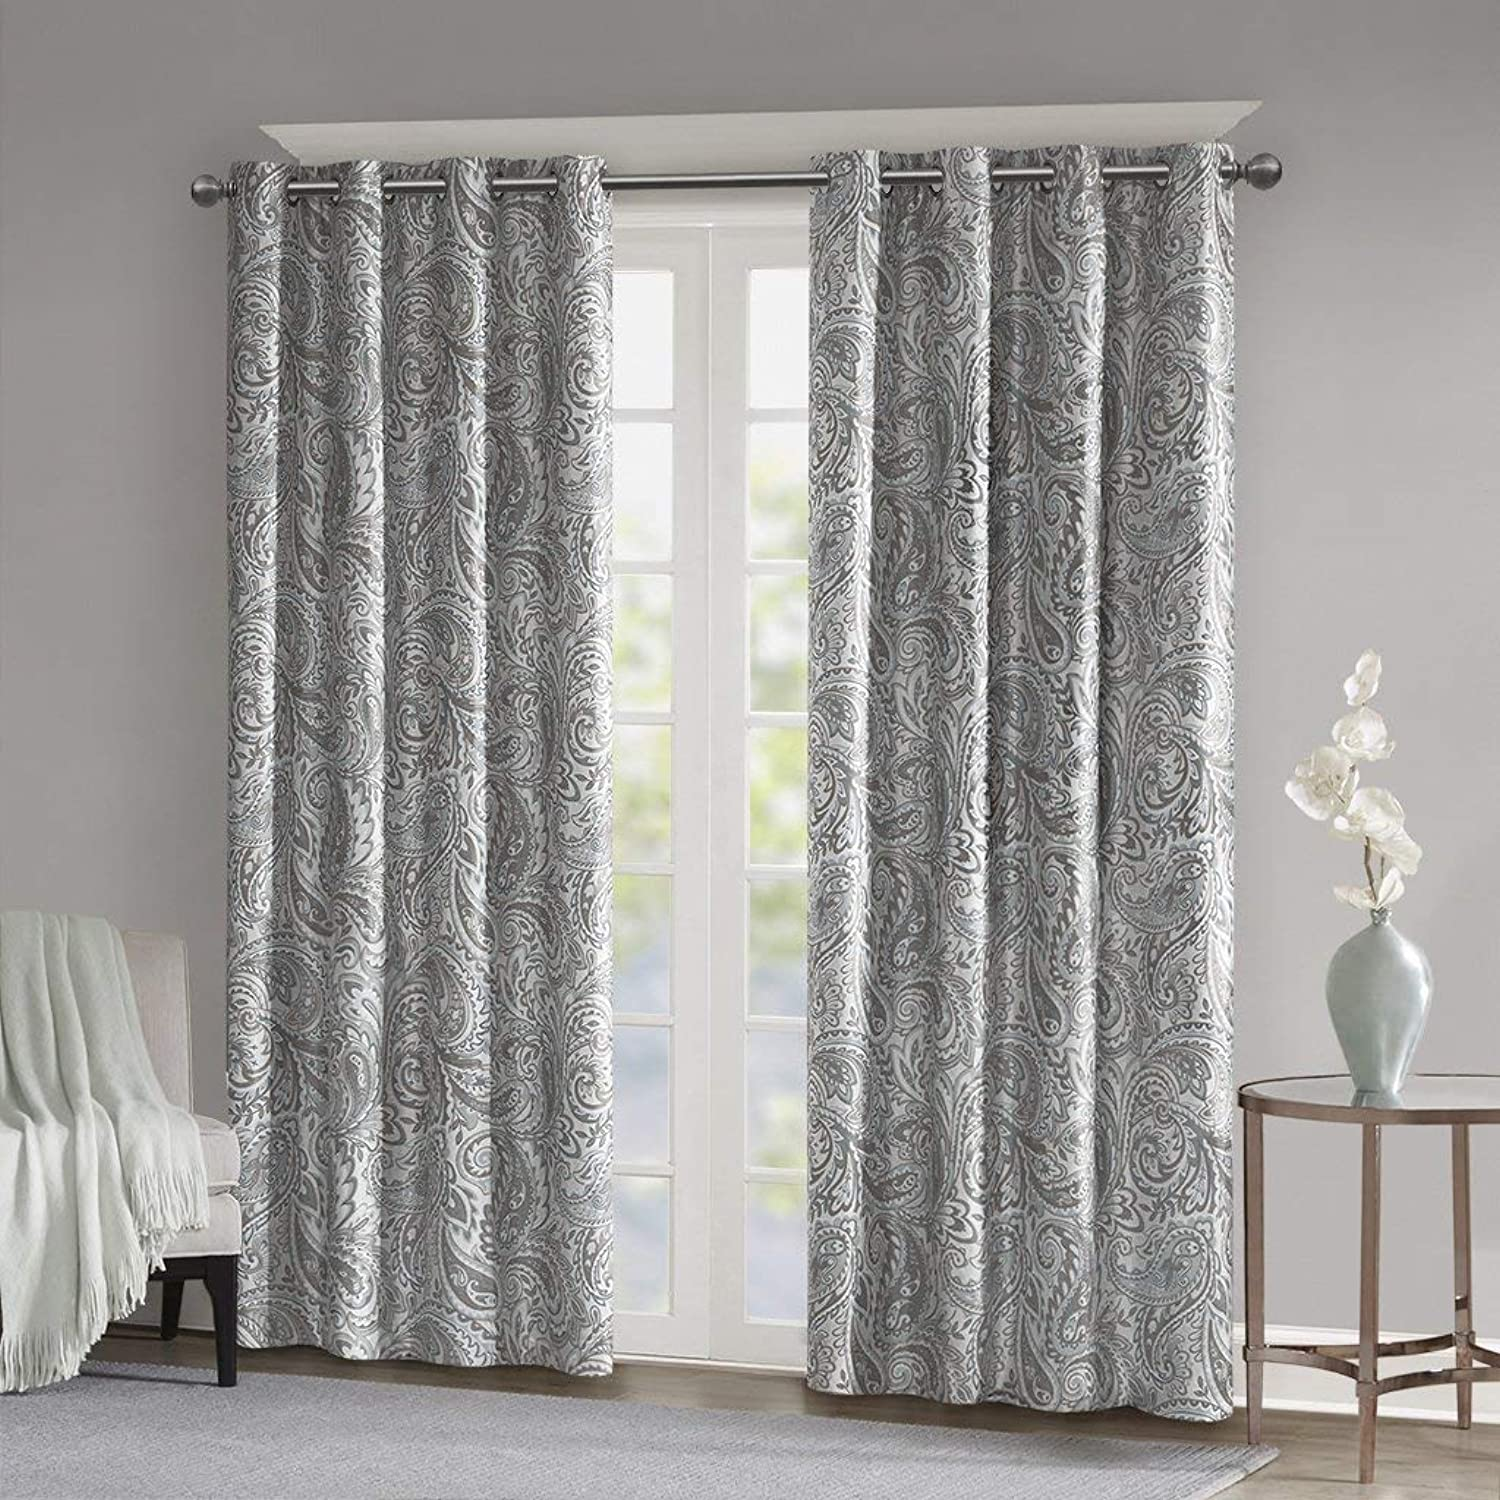 Blackout Curtains For Bedroom , Traditional Grommet Grey Window Curtains For Living Room Family Room ,  Jenelle Paisley Therma Black Out Window Curtain For Kitchen, 50X84 , 1-Panel Pack